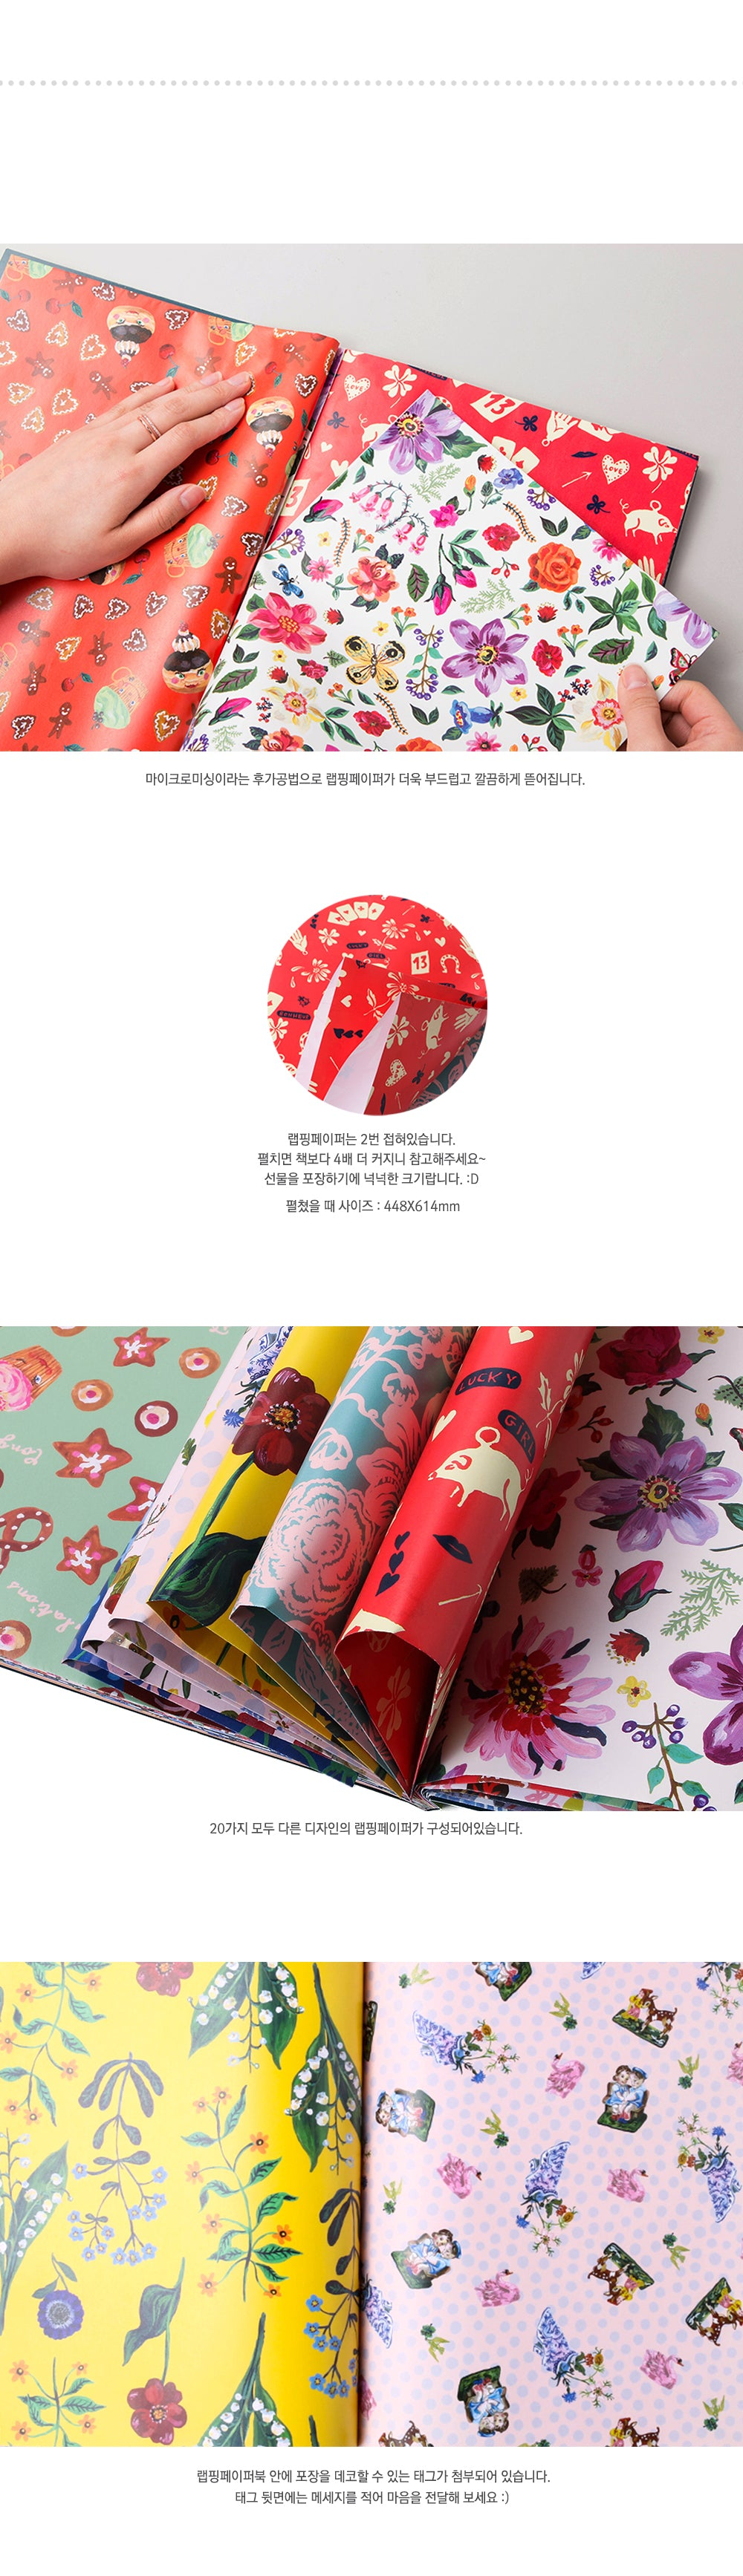 Wrapping Paper Book - Nathalie Léte Vol. 4 - NL8465